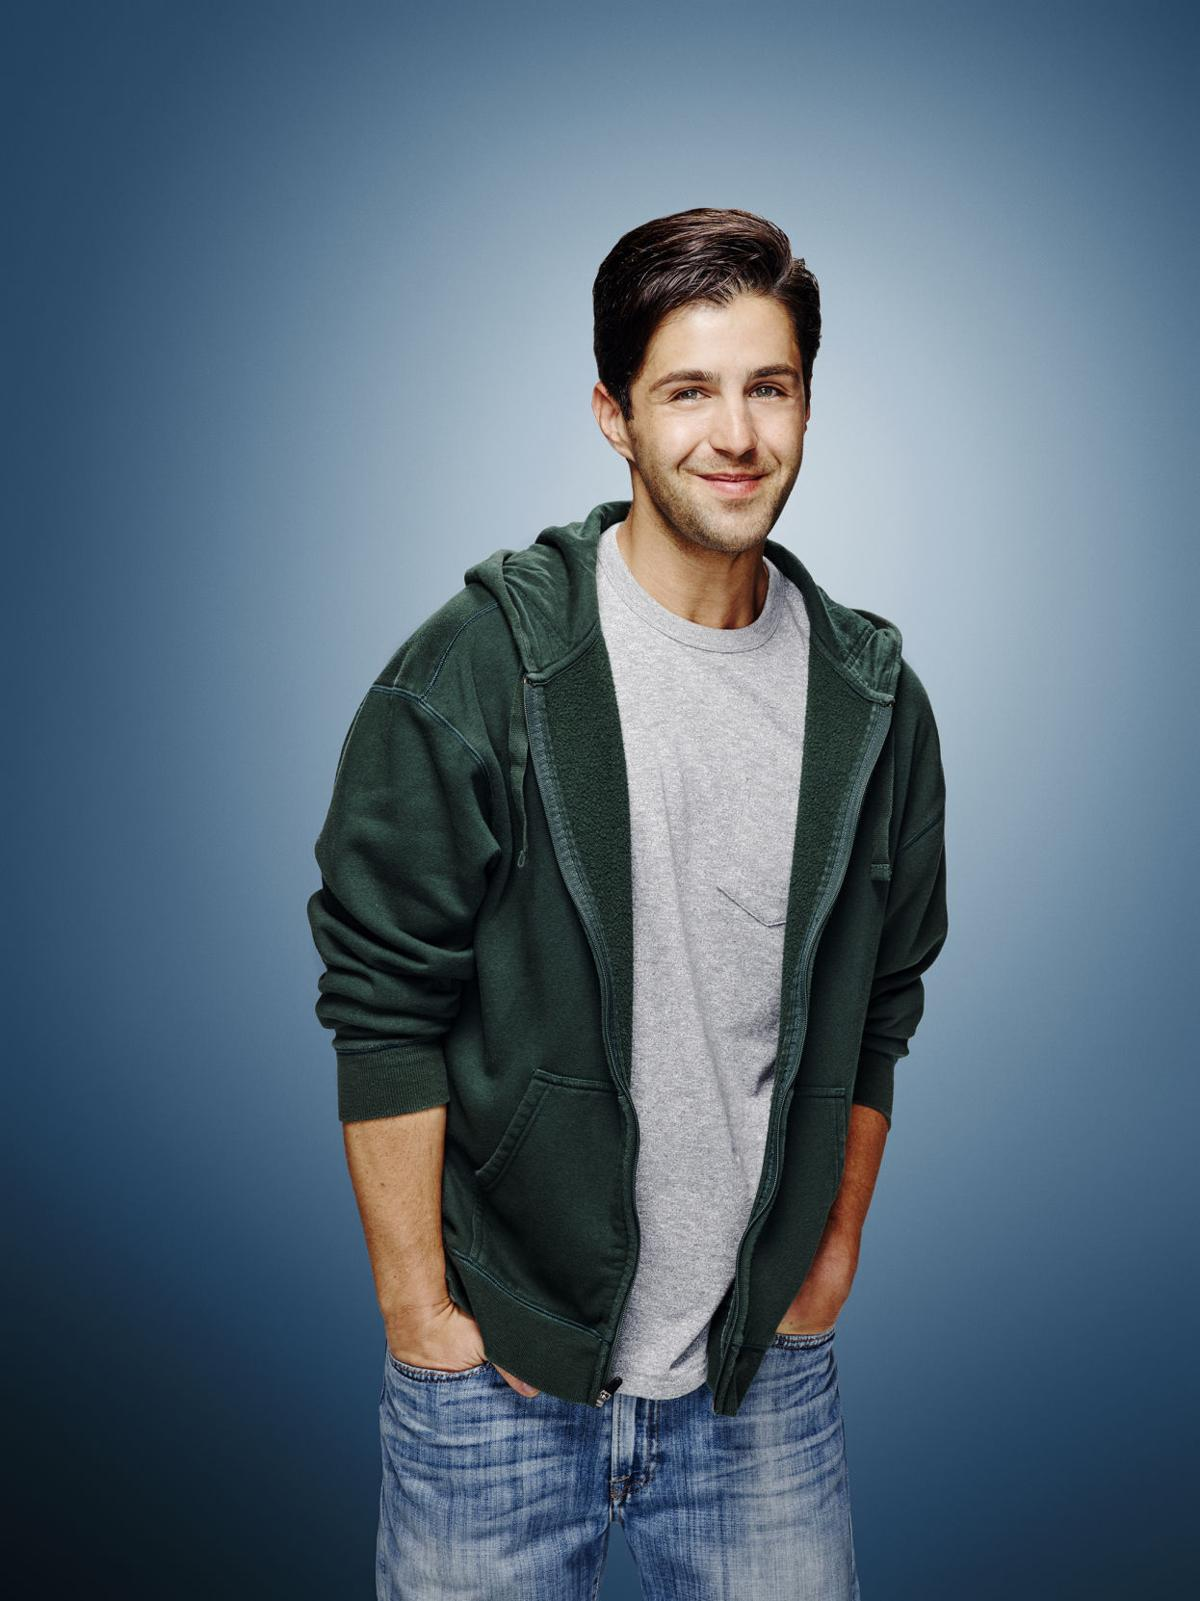 Josh Peck Finds Post Nickelodeon Home On Grandfathered